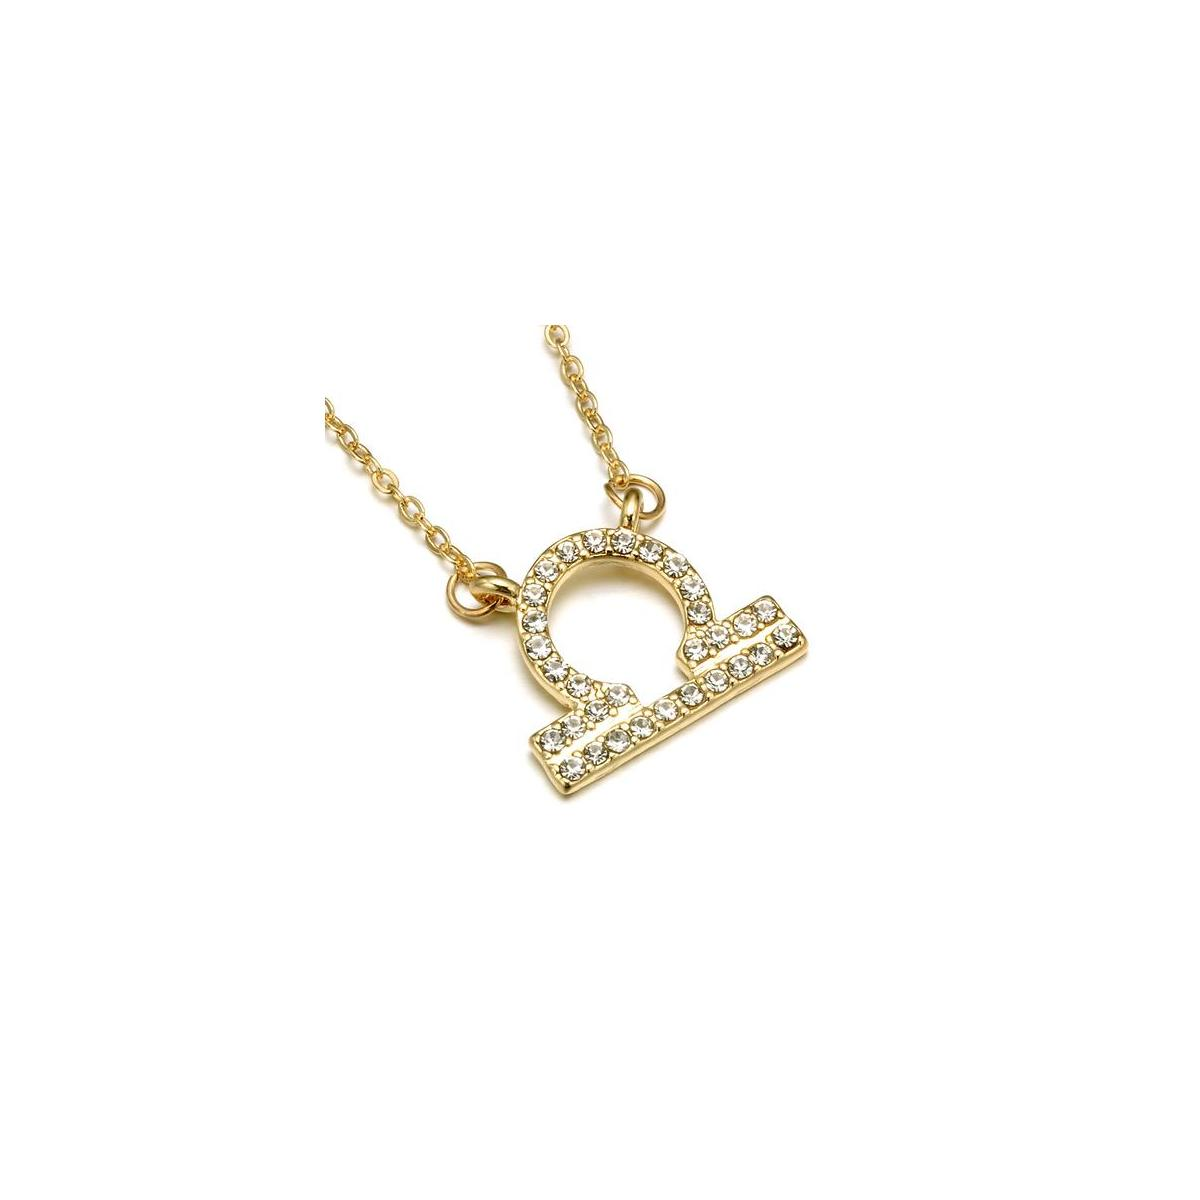 Gold Zodiac Necklace, Rhinestone Encrusted 12 Constellations Zodiac Sign Necklaces for Women